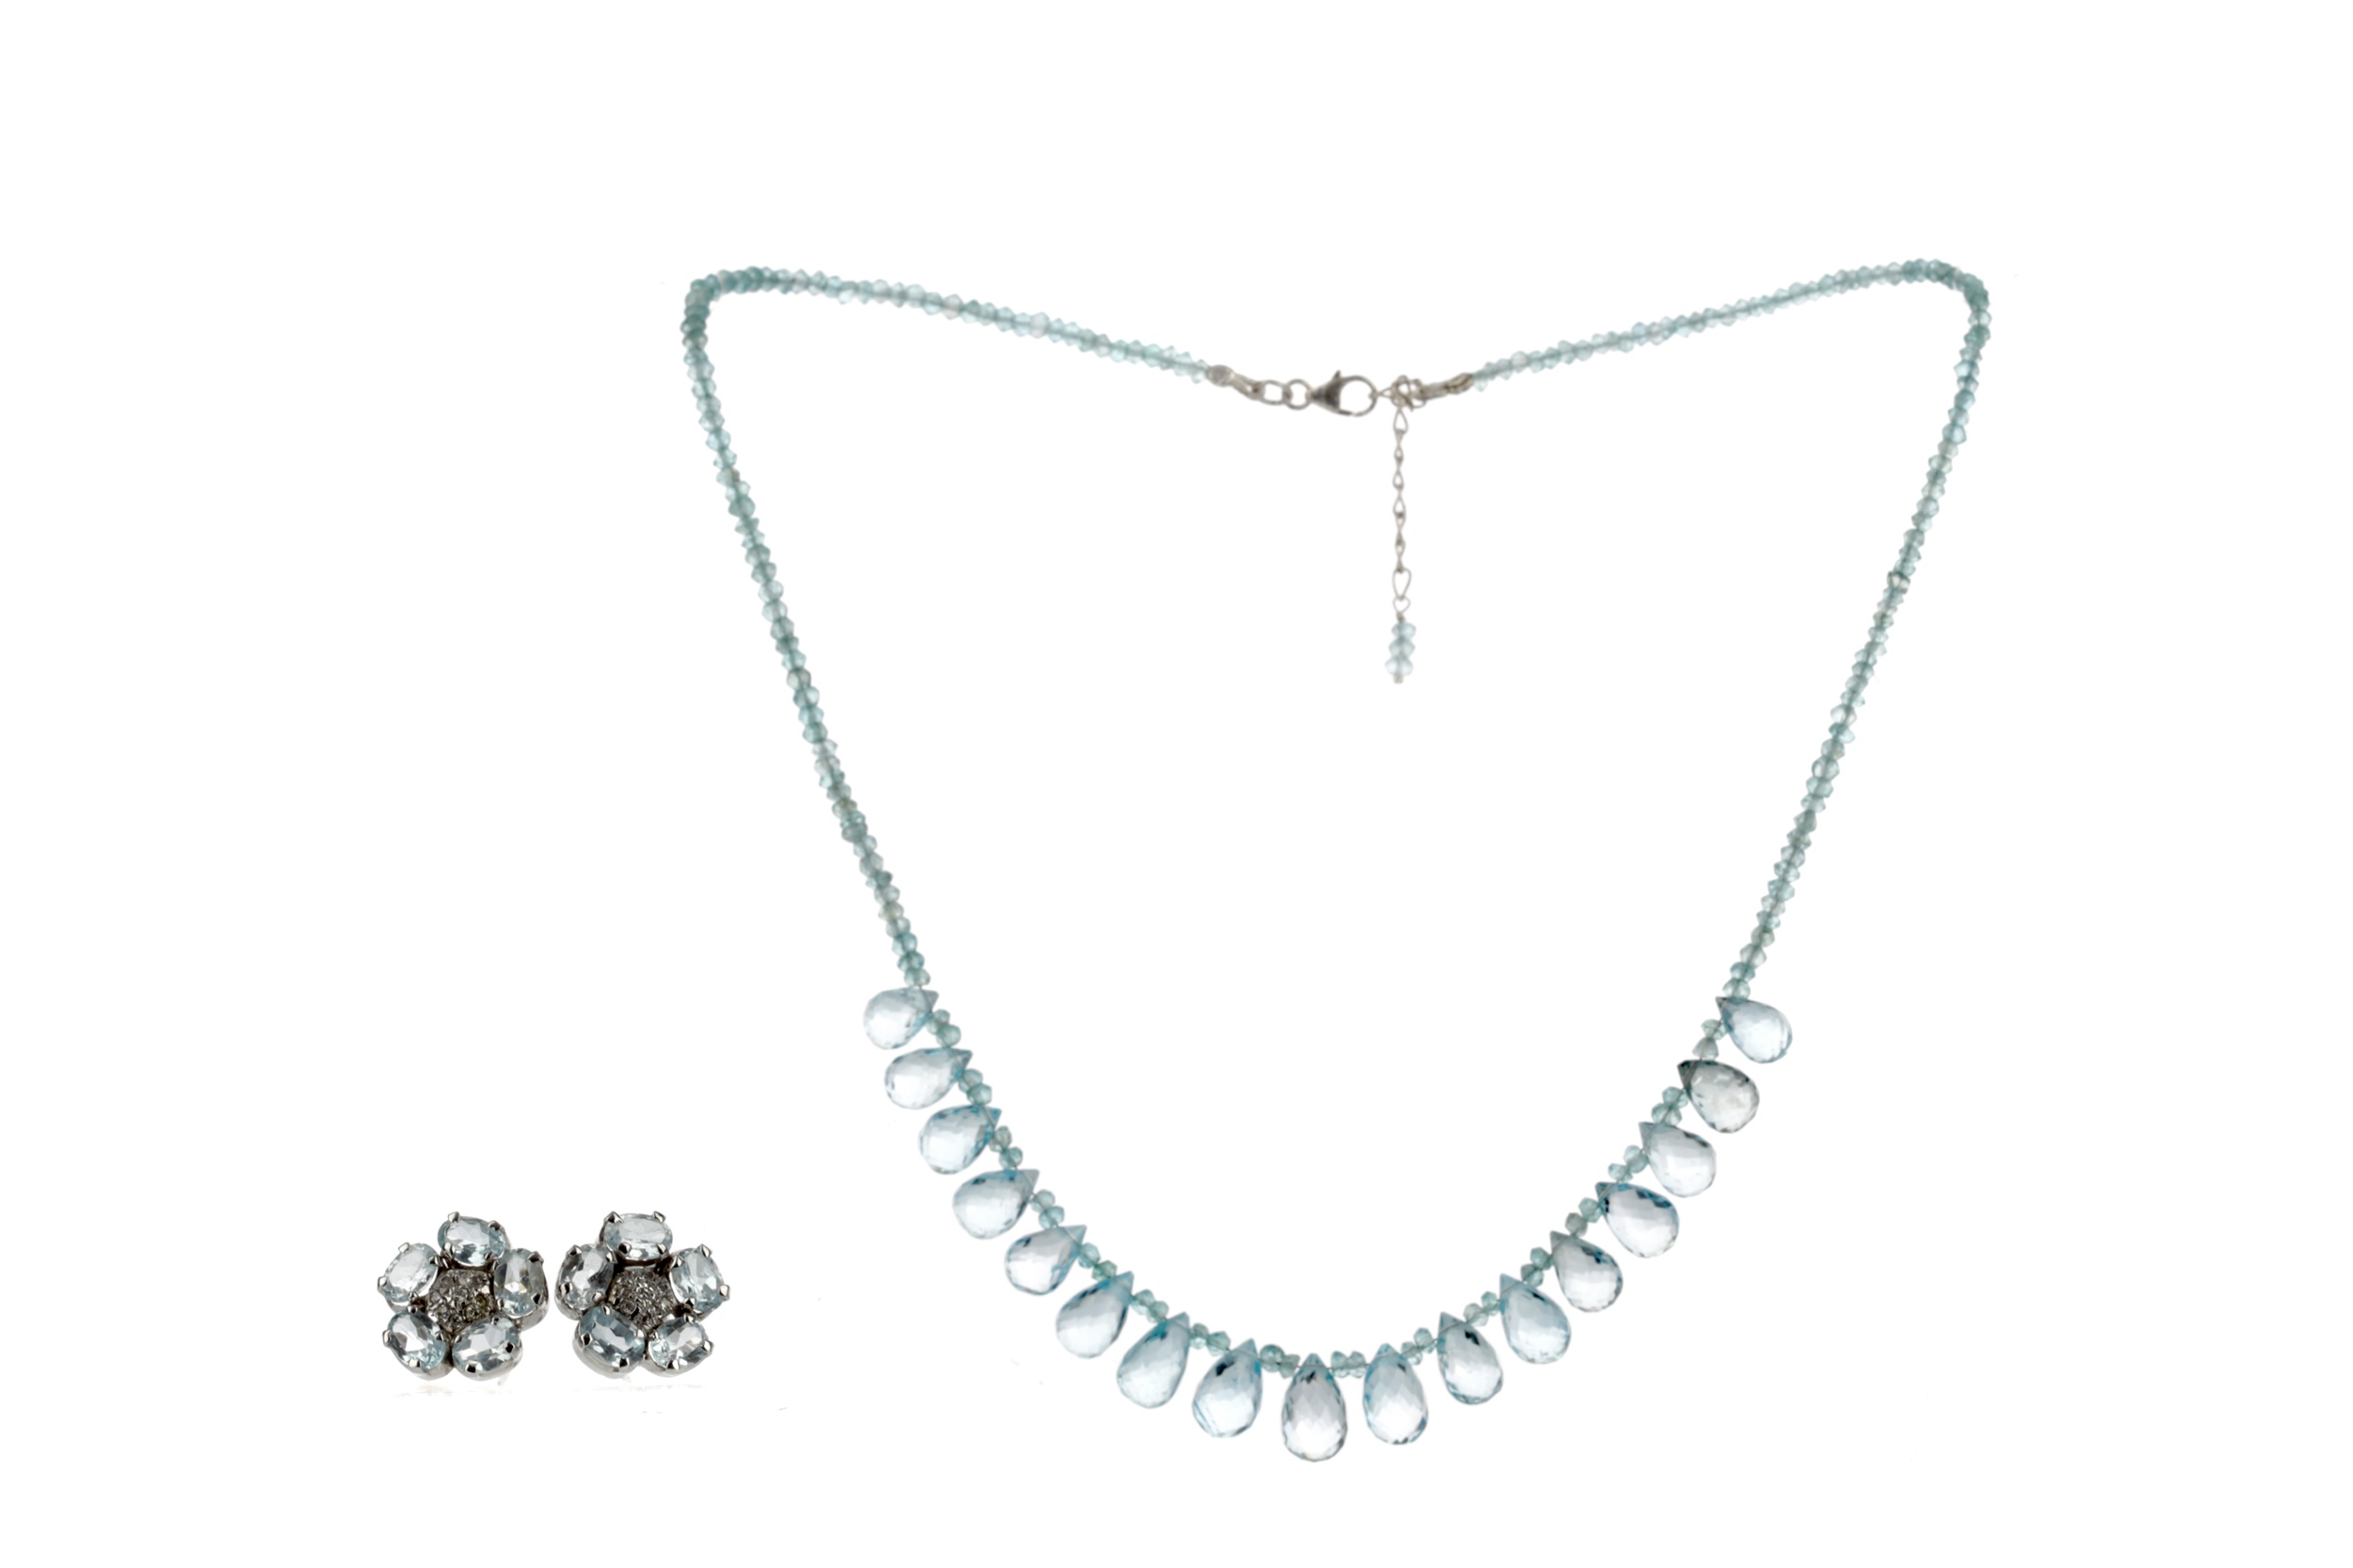 A BLUE TOPAZ NECKLACE AND EARRINGS